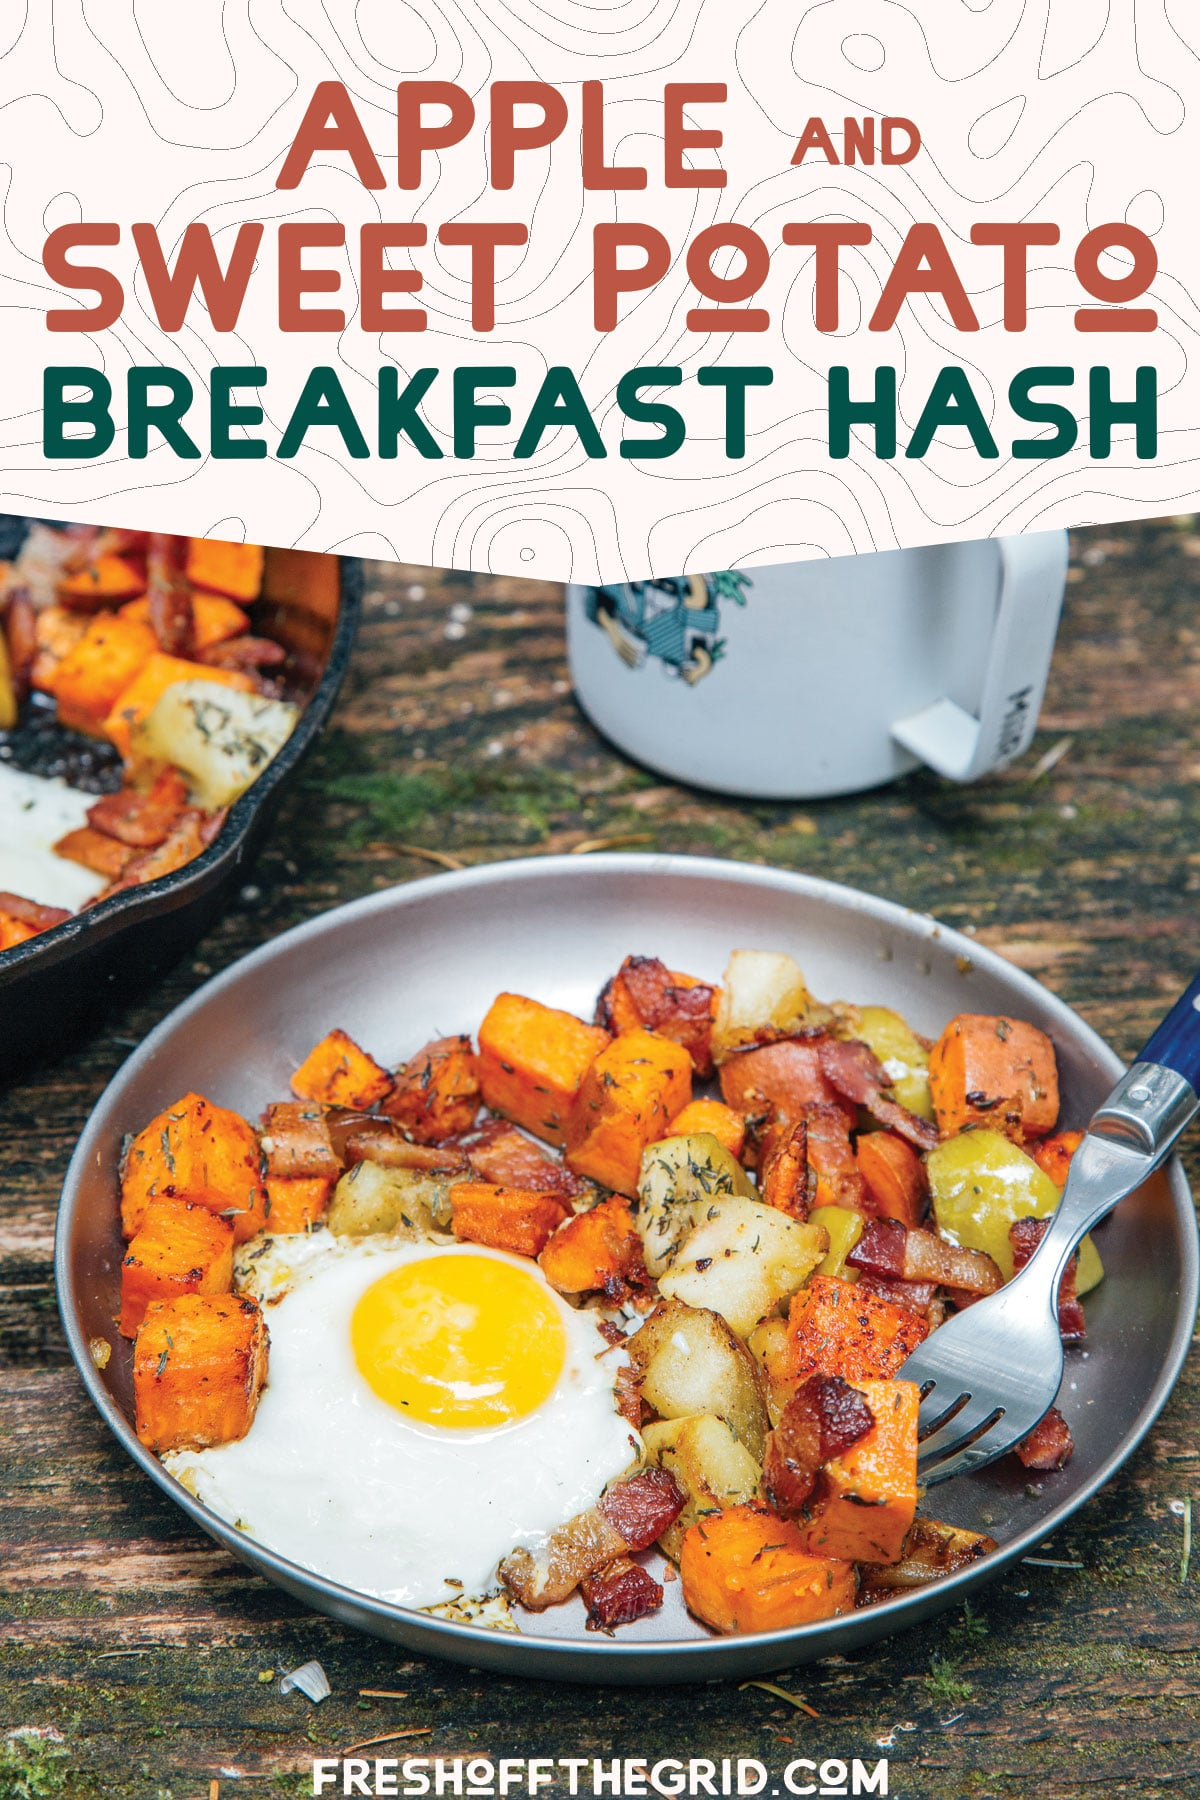 This autumn inspired breakfast hash is packed with sweet potatoes, apples, bacon and eggs for a nutritious and filling breakfast perfect for chilly mornings. We love making this on fall camping trips! via @freshoffthegrid